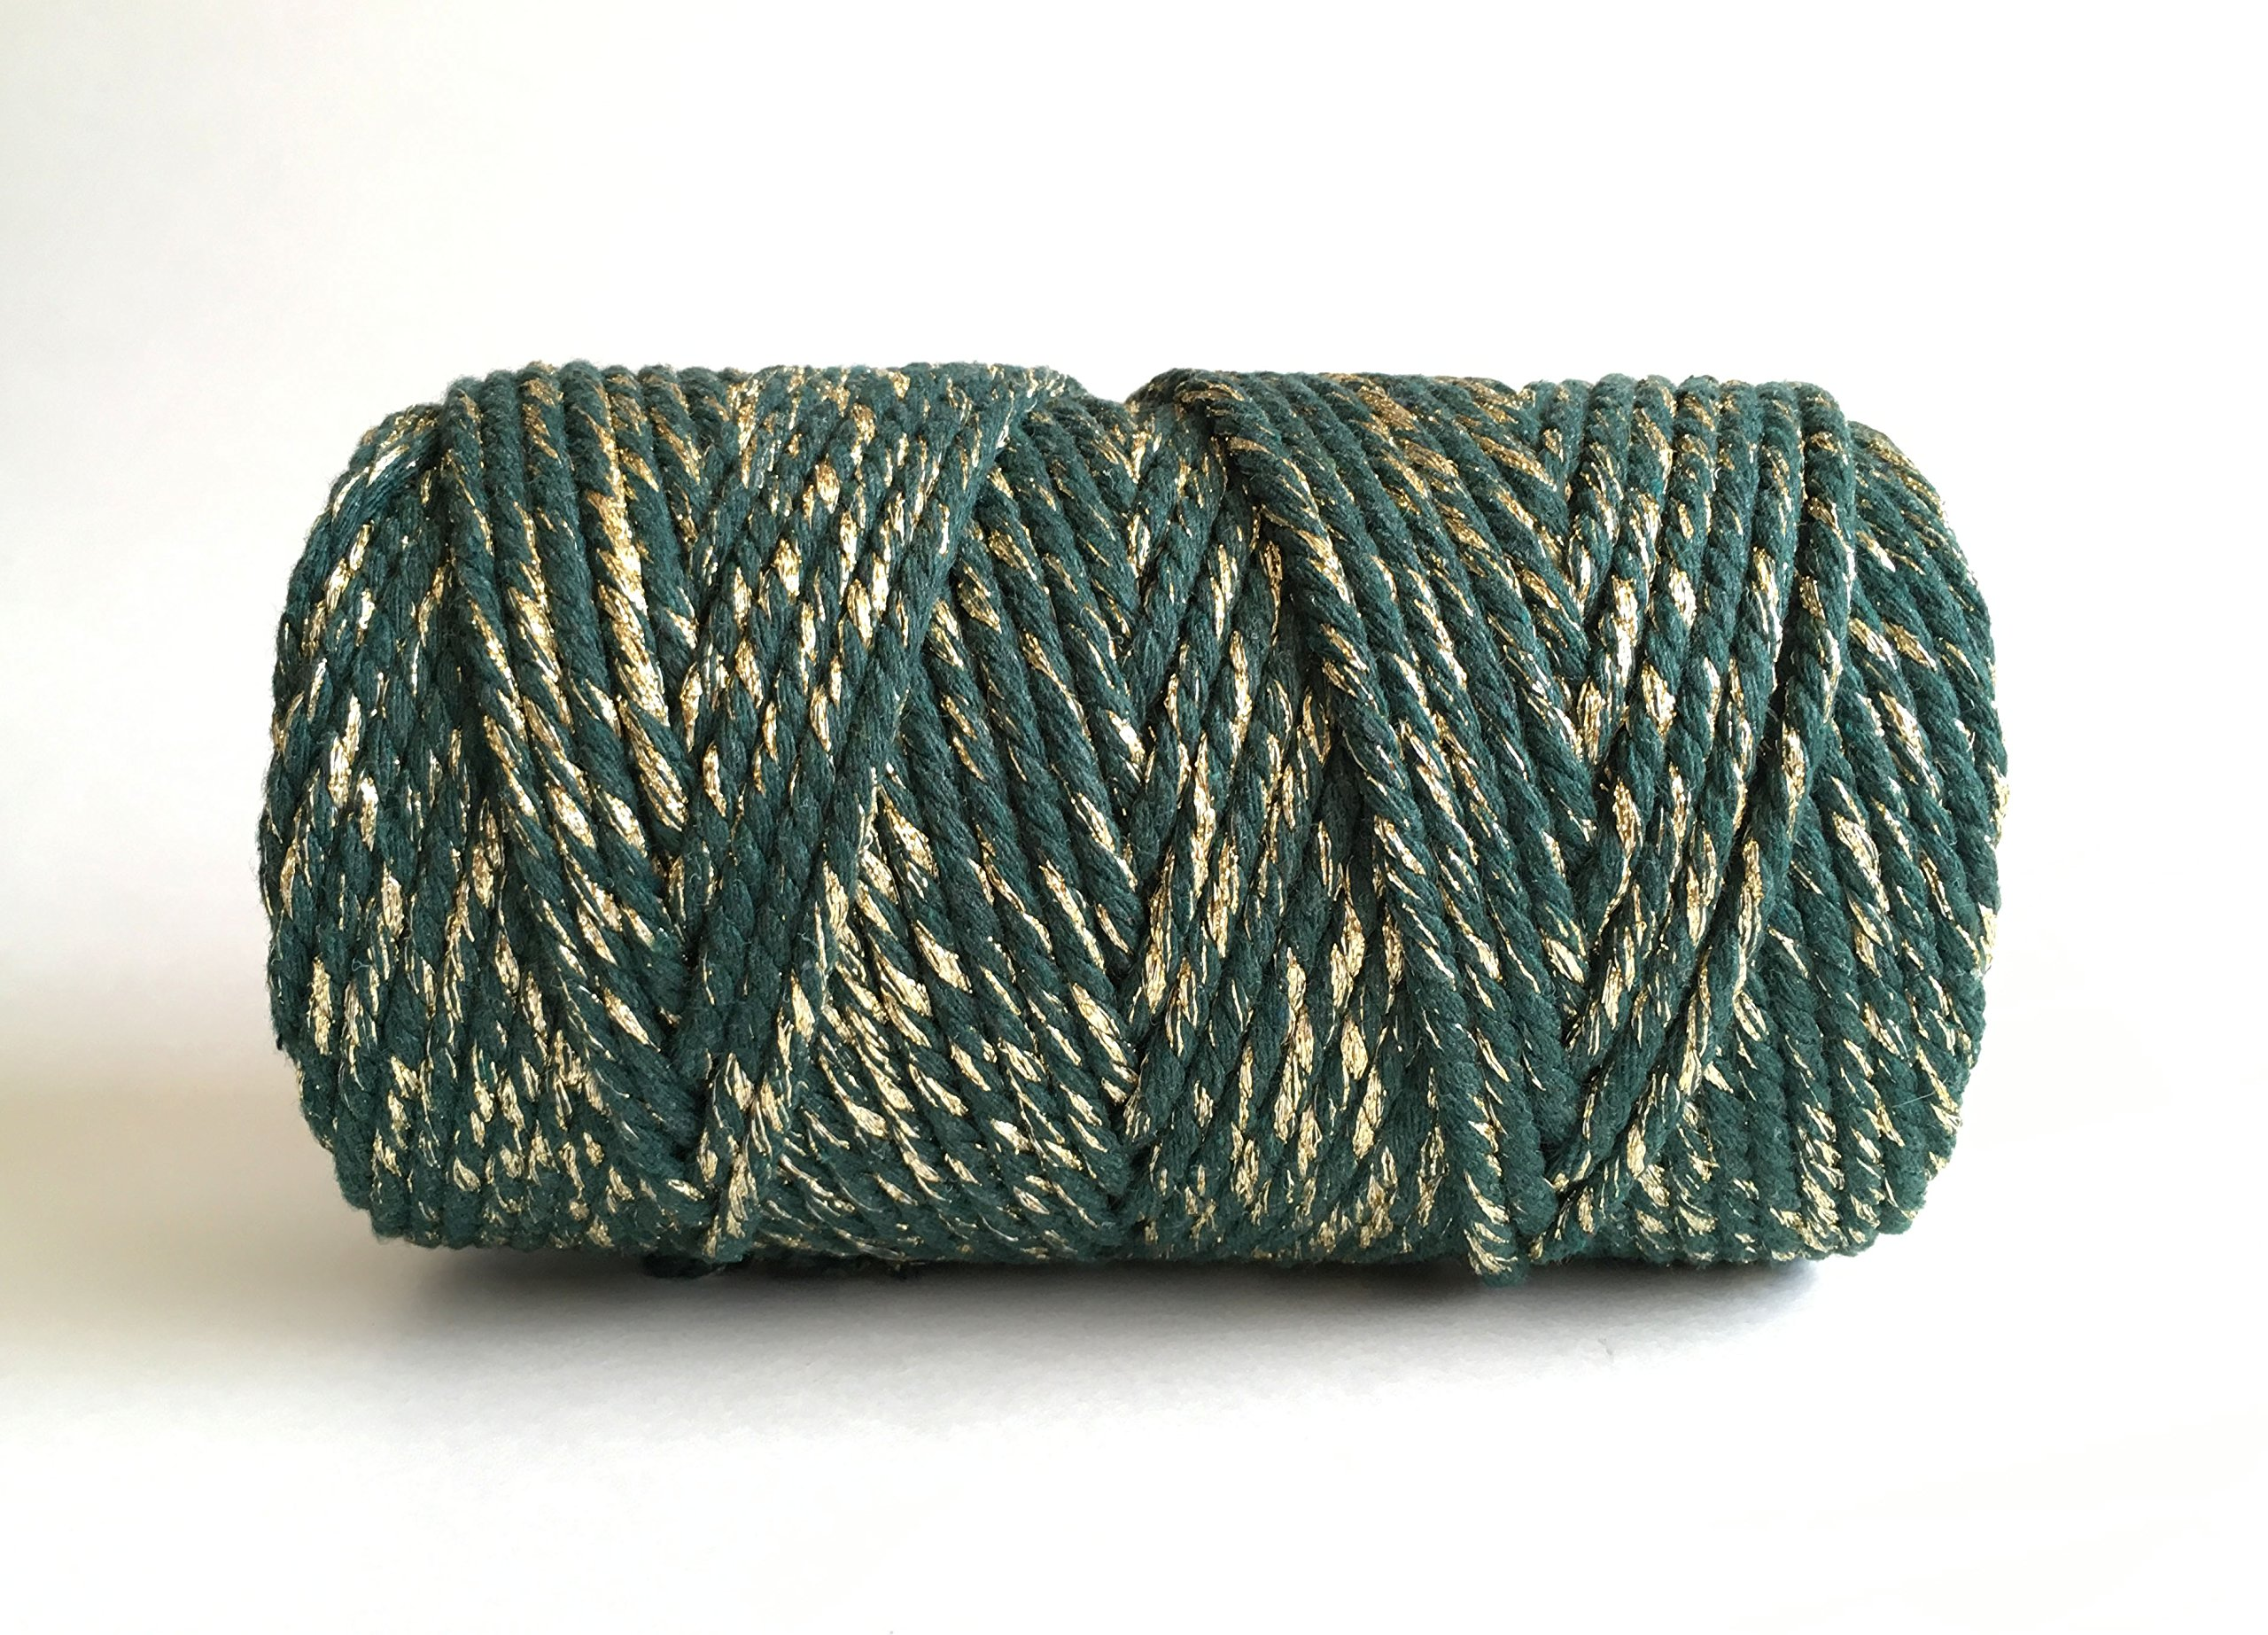 Emerald Green and Gold Macrame Cord / 4mm 3 Strand Cotton Sparkle Fiber Art Rope by Rock Mountain Co (Image #3)